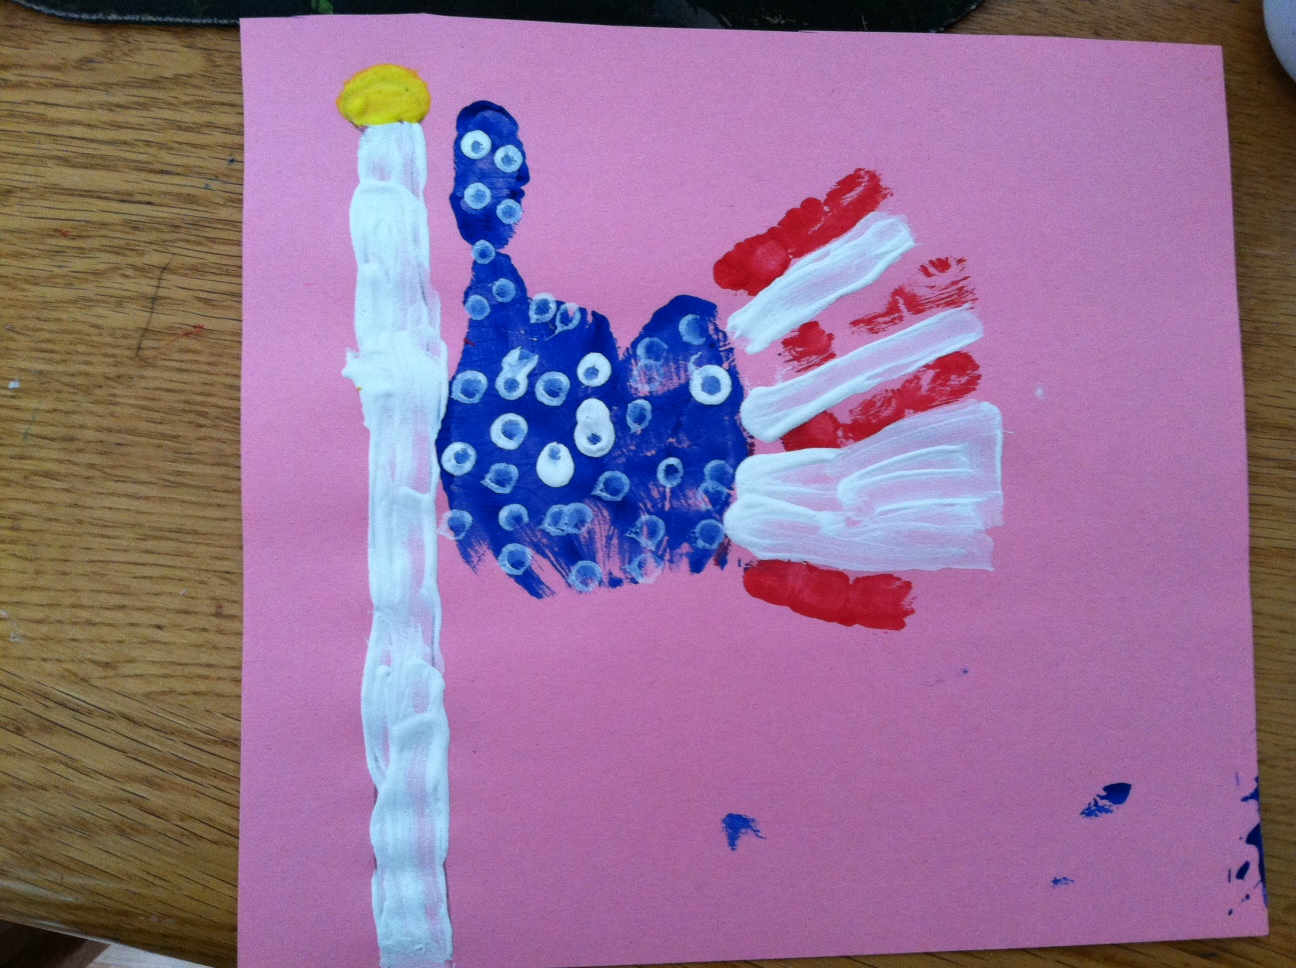 4th of July Pics Handmade Drawing Free Download